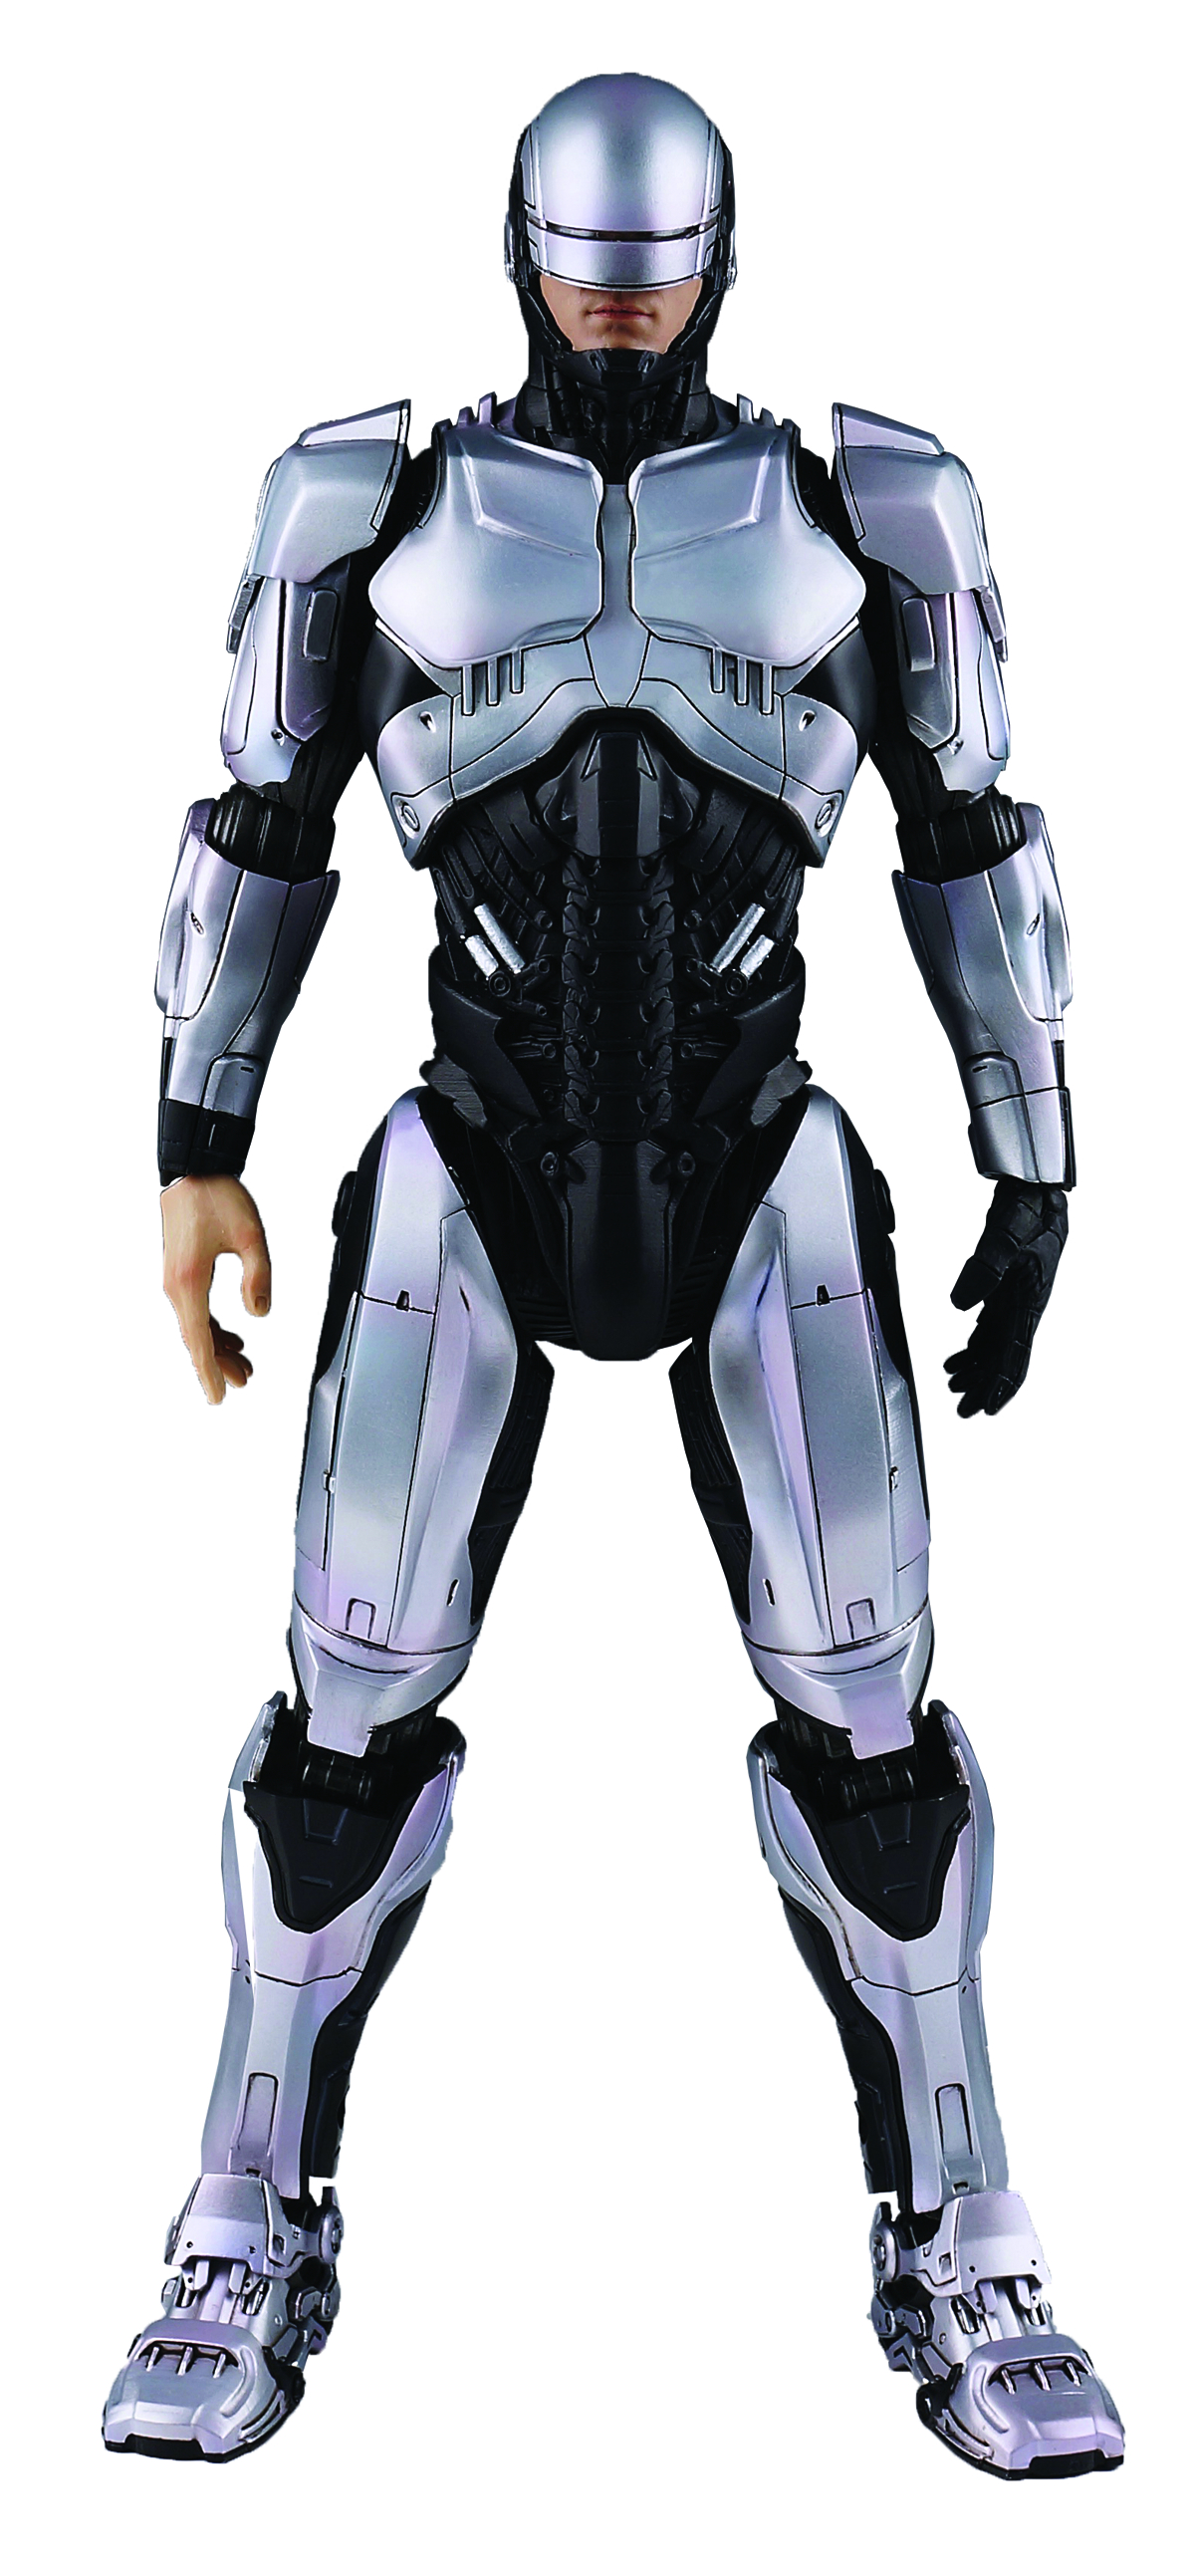 ROBOCOP 1.0 1/6 SCALE FIG